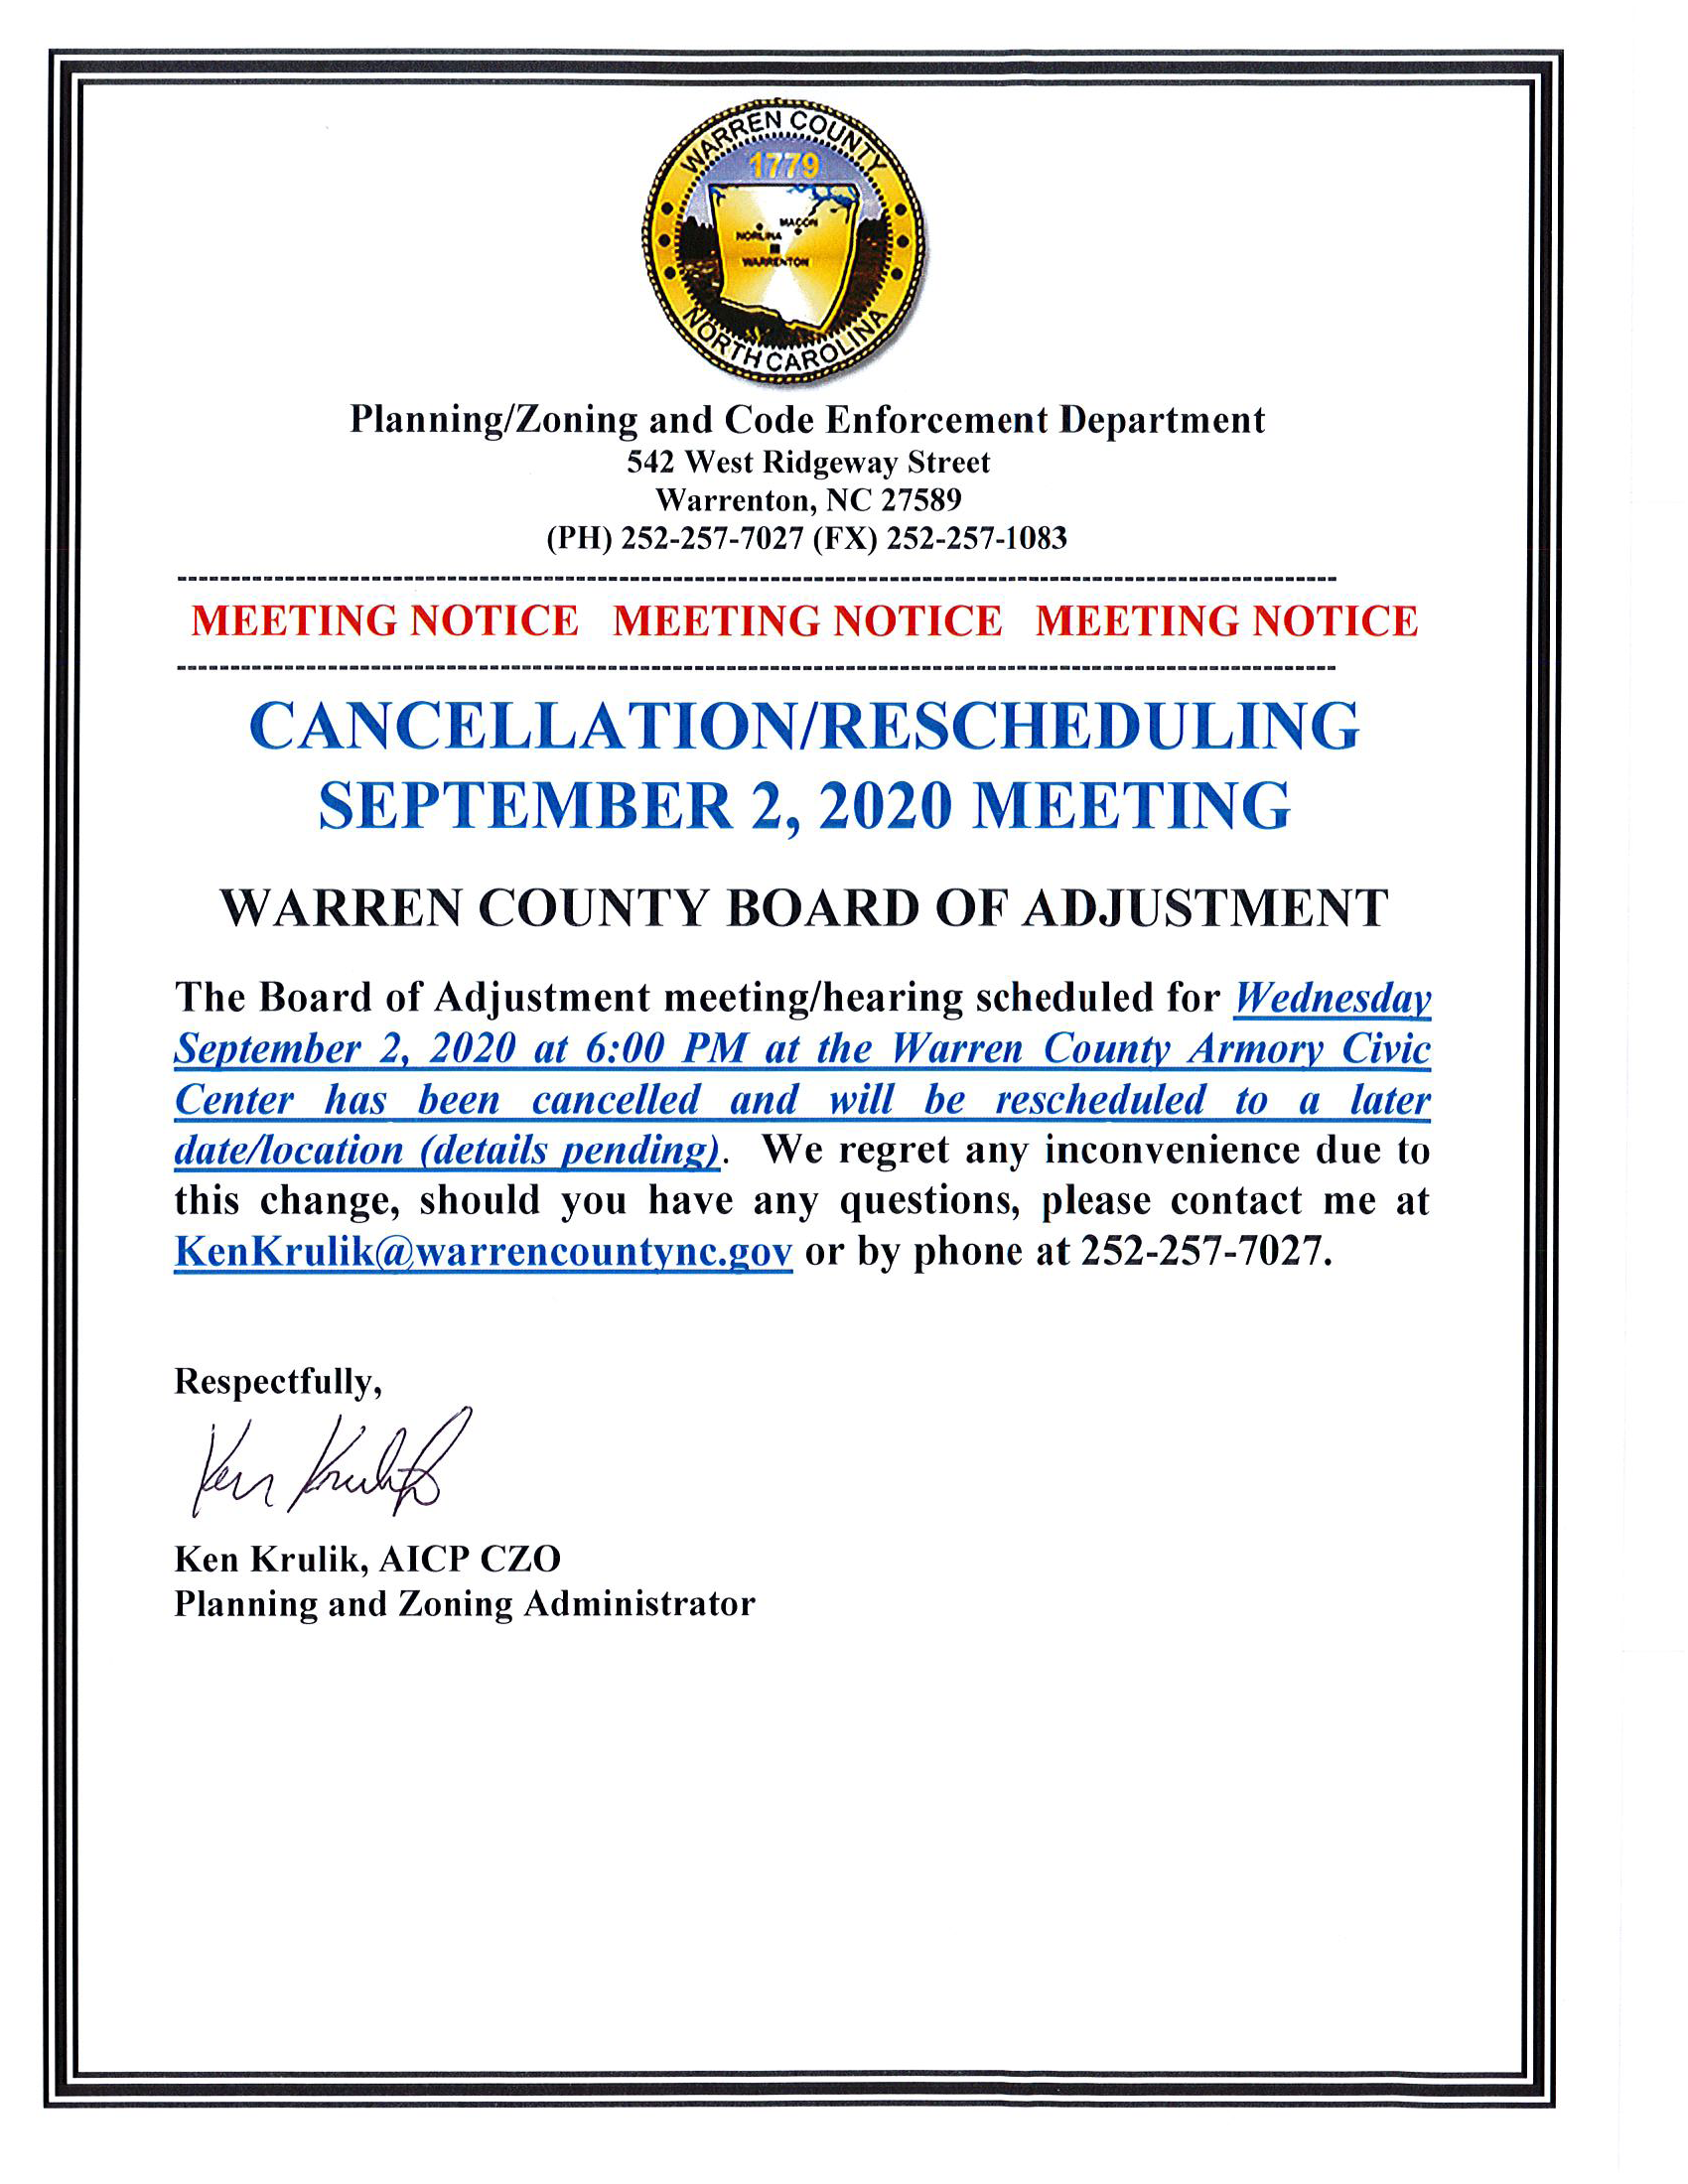 9-2-20 Meeting Cancellation